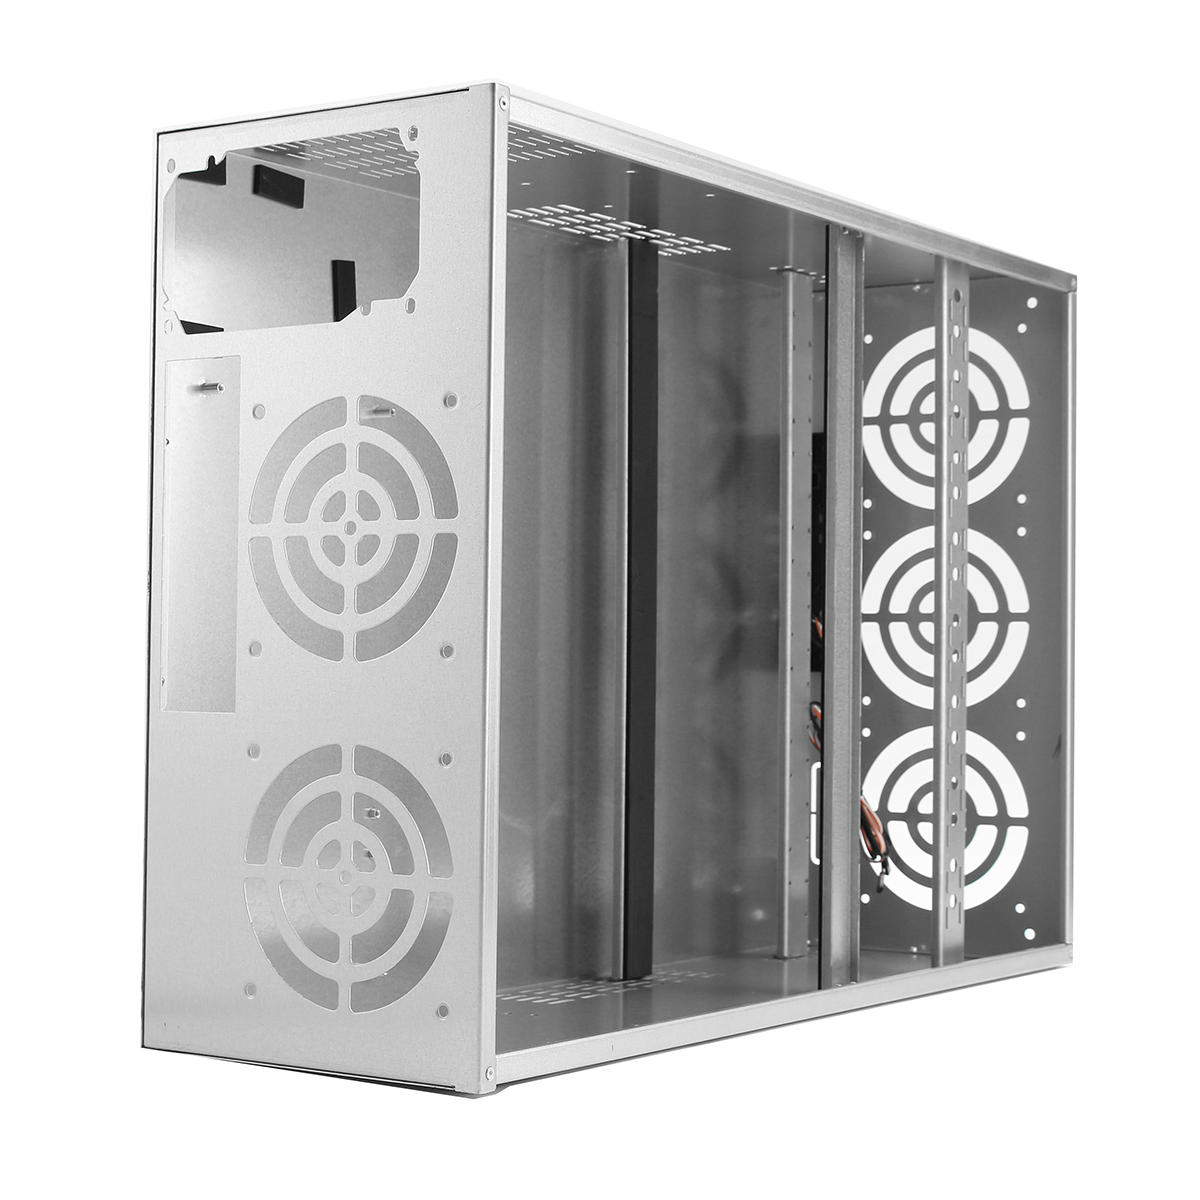 Crypto Coin Open Air Mining Frame Rig Graphics Case pour 6-8 GPU ETH BTC Ethereum